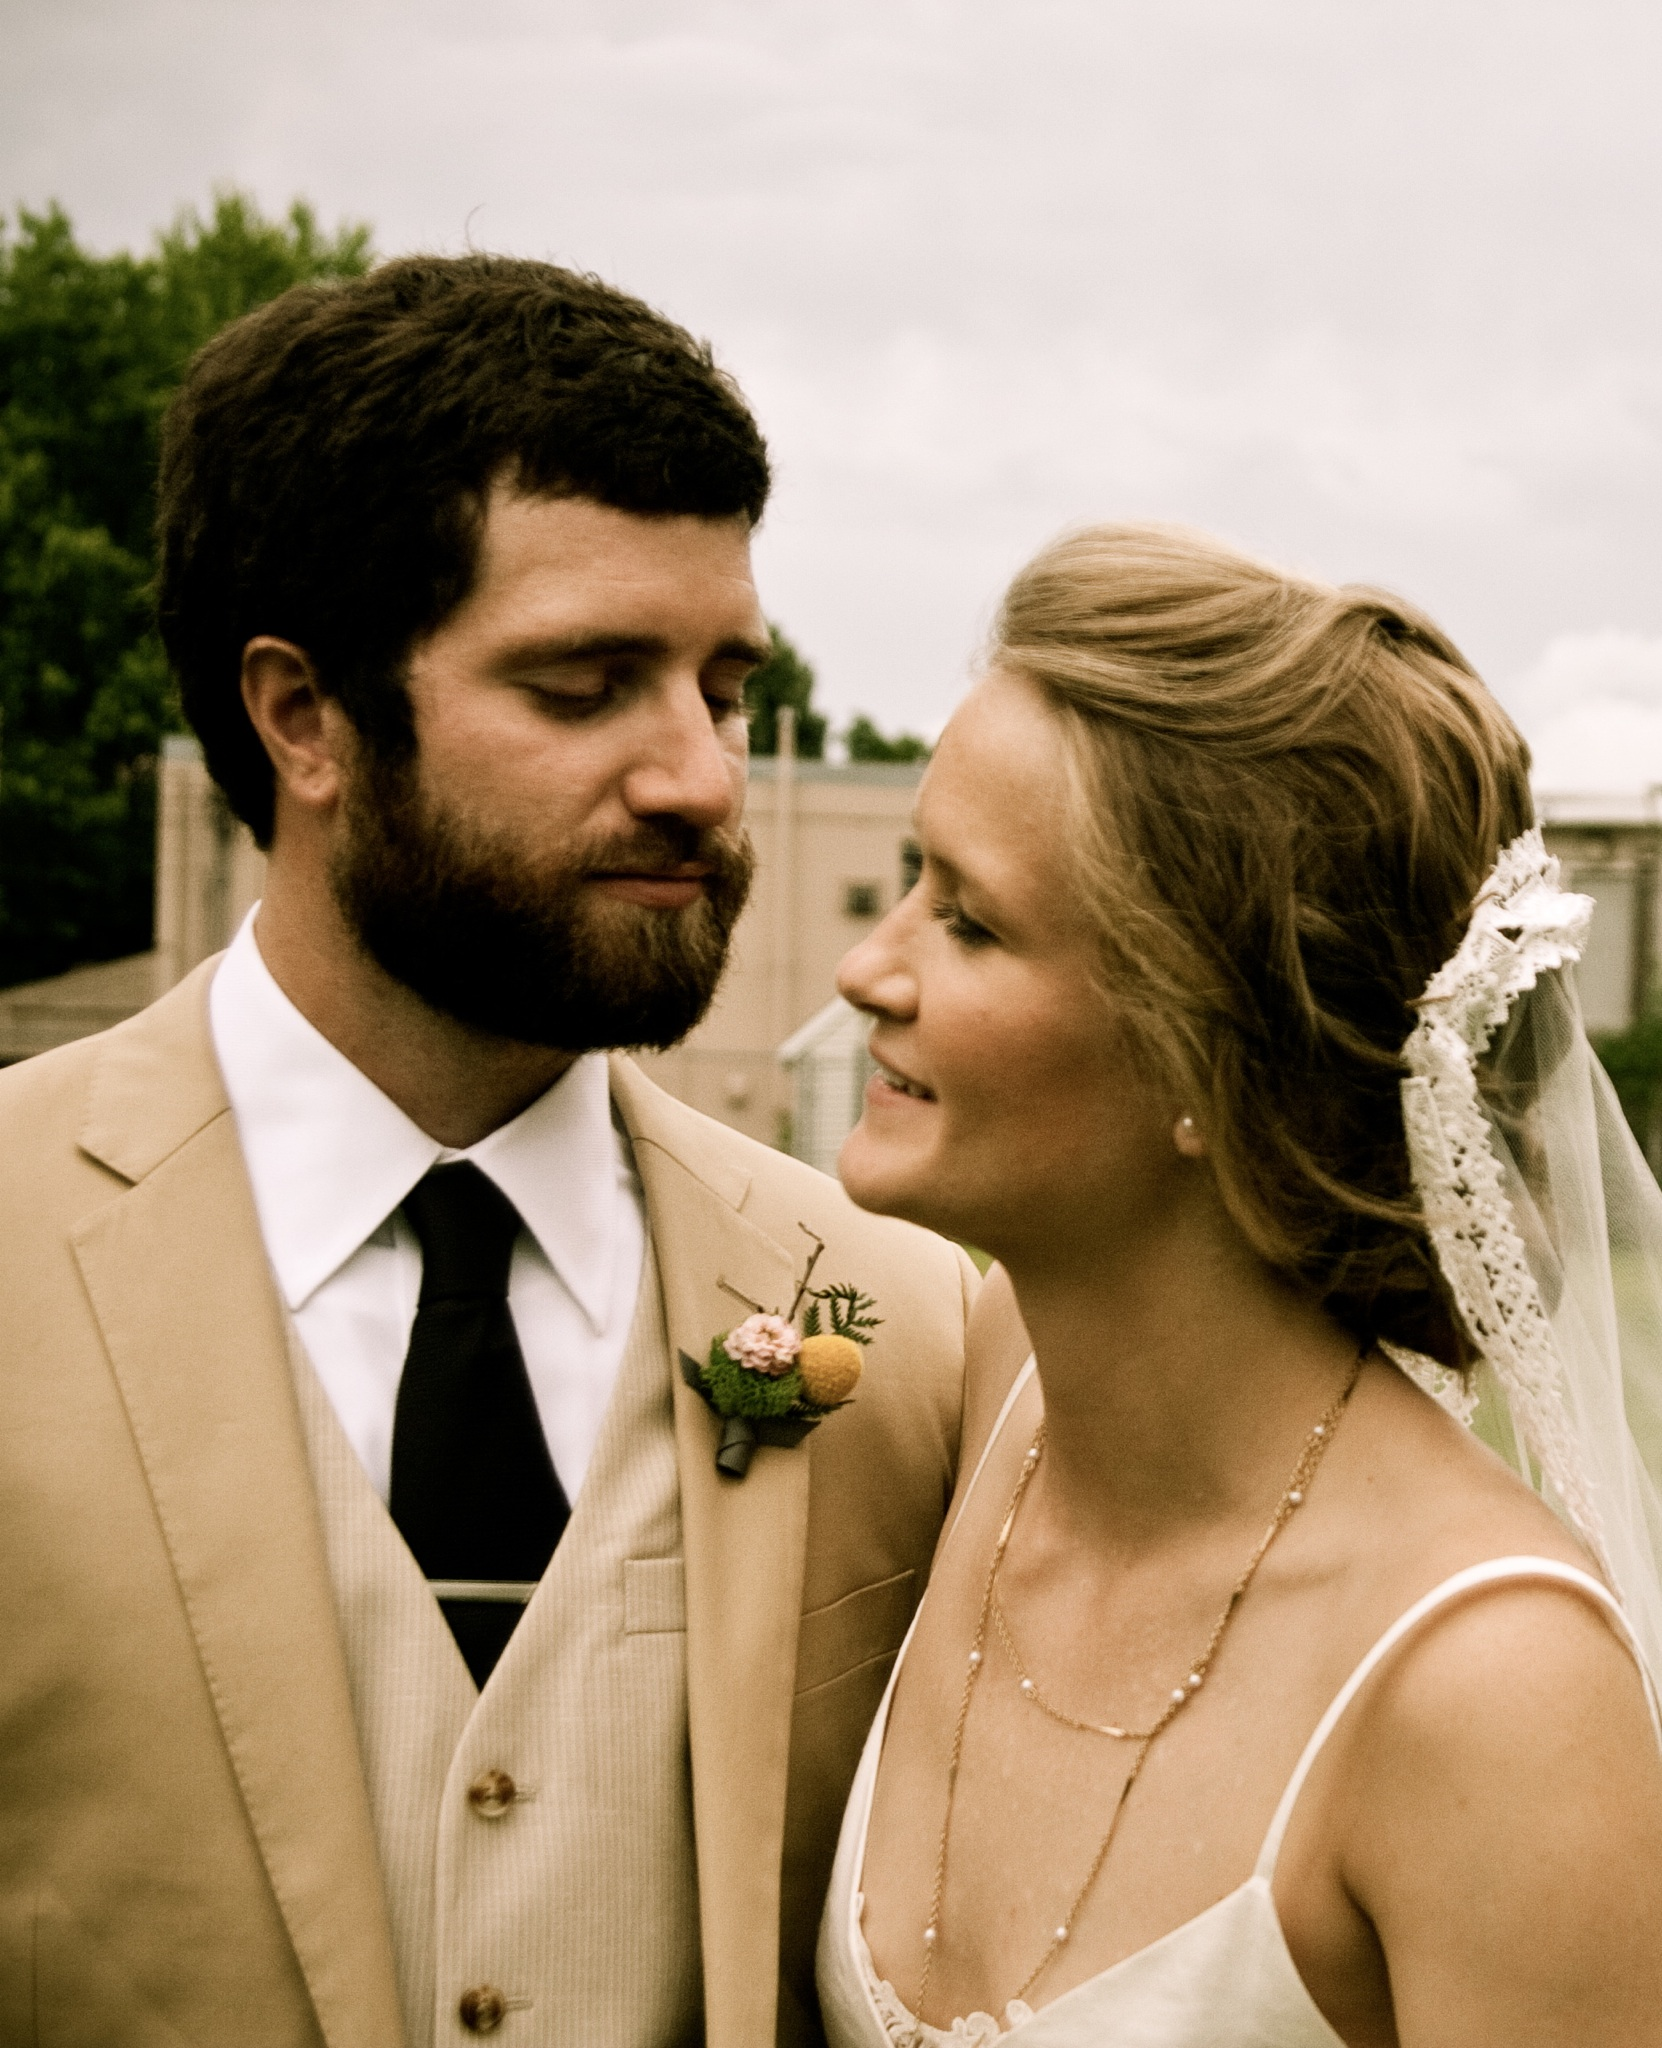 Married in the summer of 2010